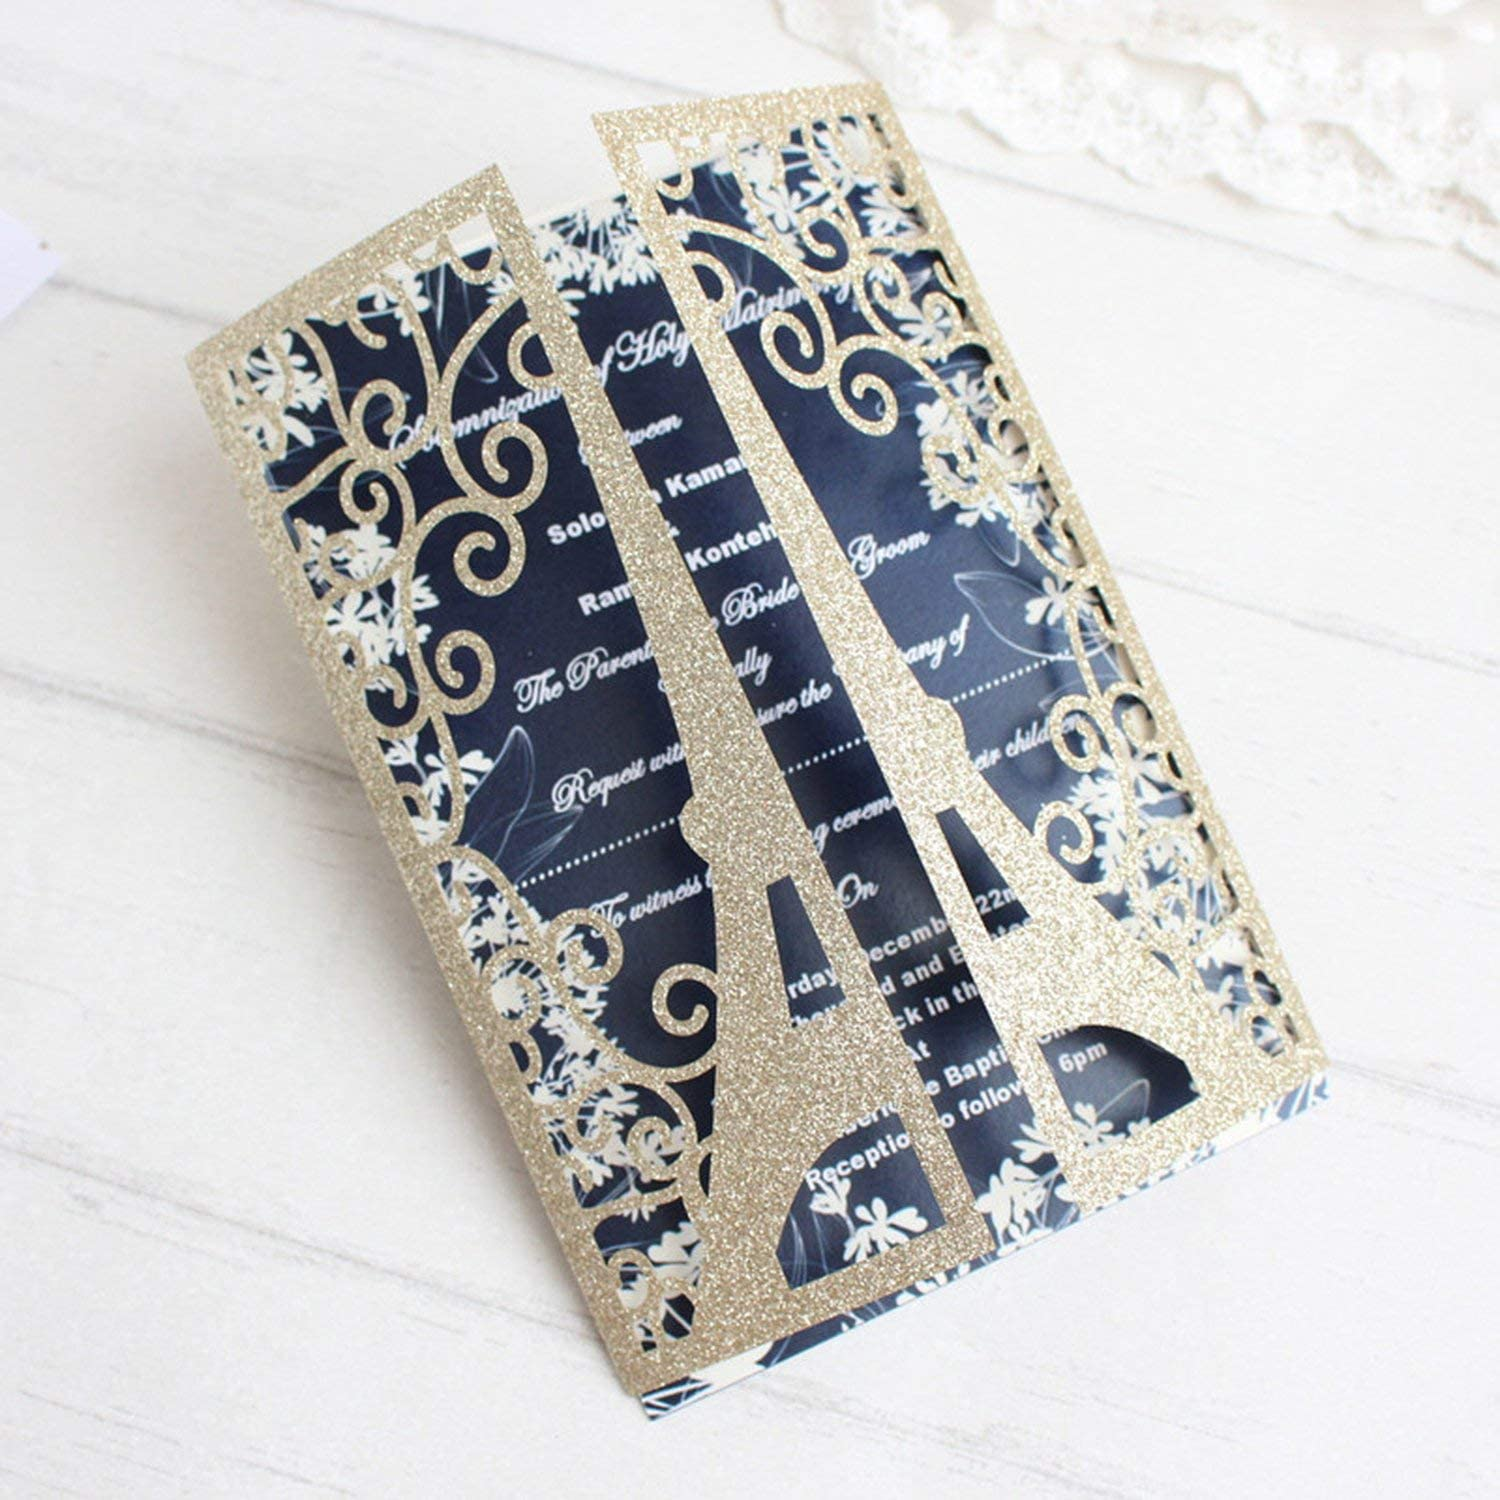 Glitter Invitations for Wedding Business Party Paris Eiffel Tower Greeting Card Supply,Choose Color,Laser Cut Card